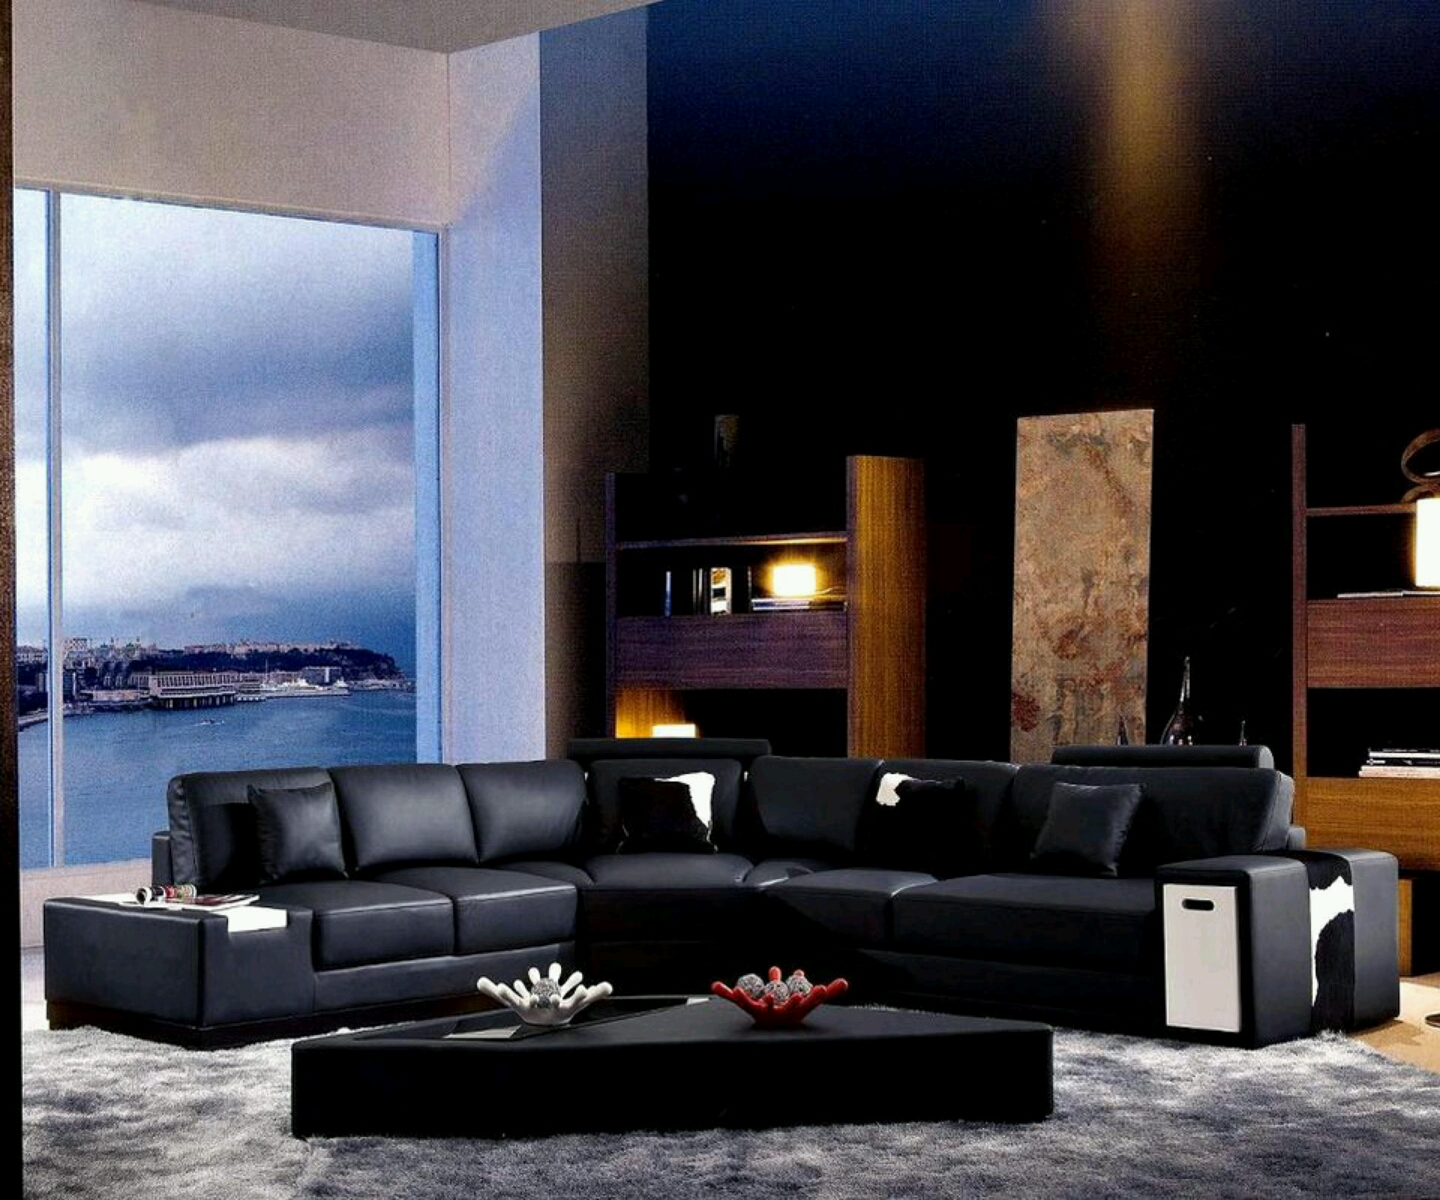 luxury living rooms interior modern designs ideas. (1)